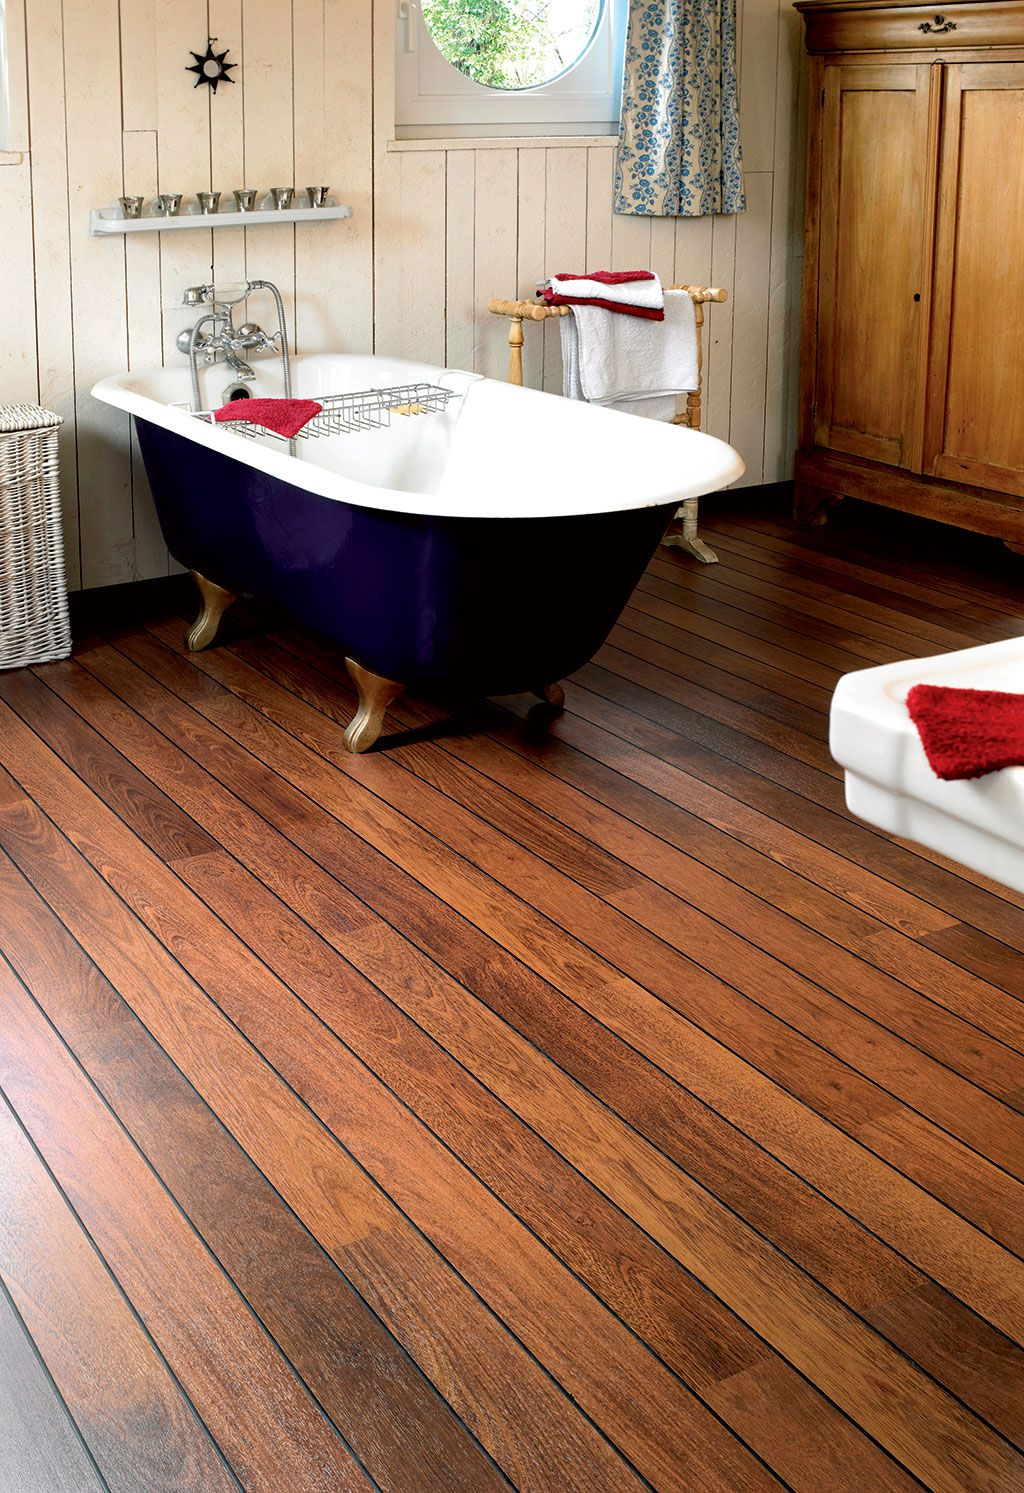 Laminate Flooring For Kitchen And Bathroom Quick Step Lagune Merbau Shipdeck Ur1032 Laminate Flooring